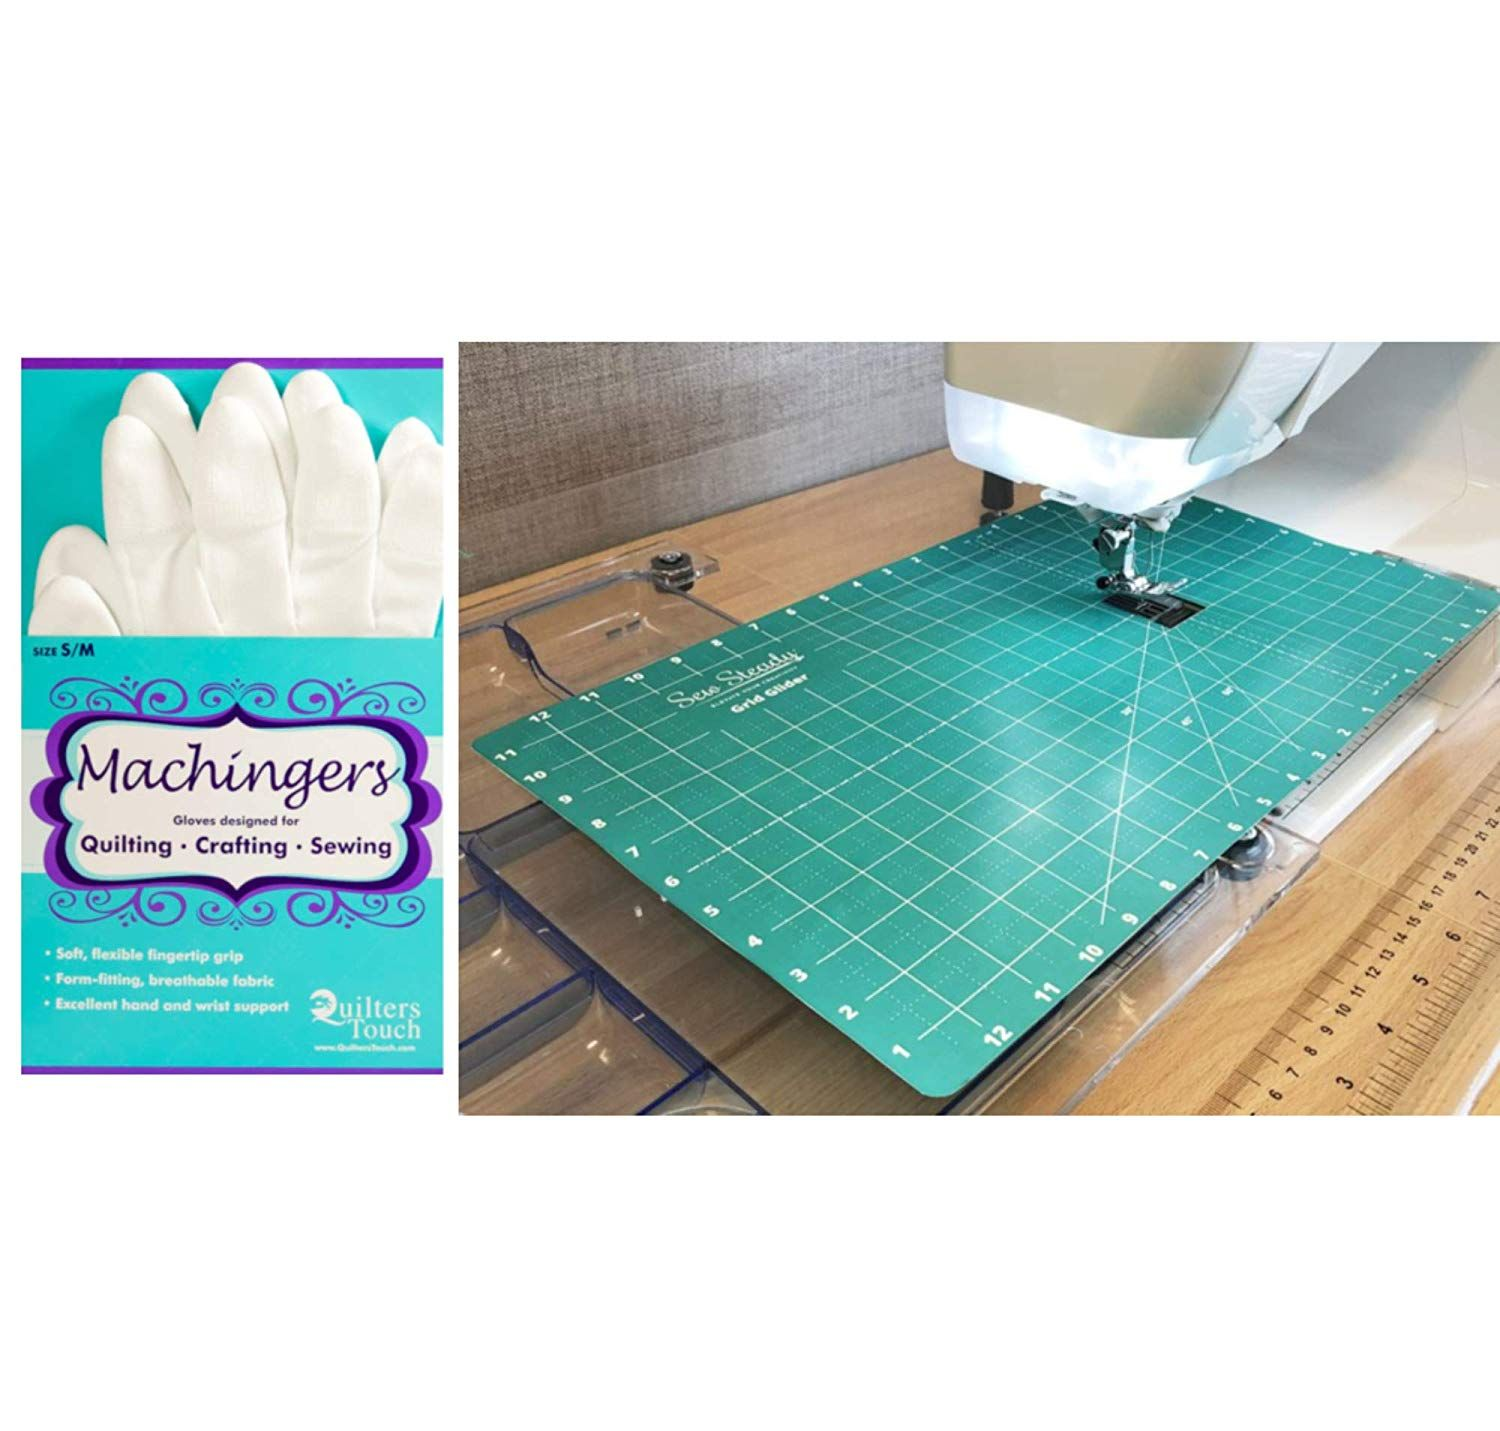 Sew Steady Free Motion Quilting Grid Slider Mat 12 x 20 and Machingers Gloves Size S//M Bundle